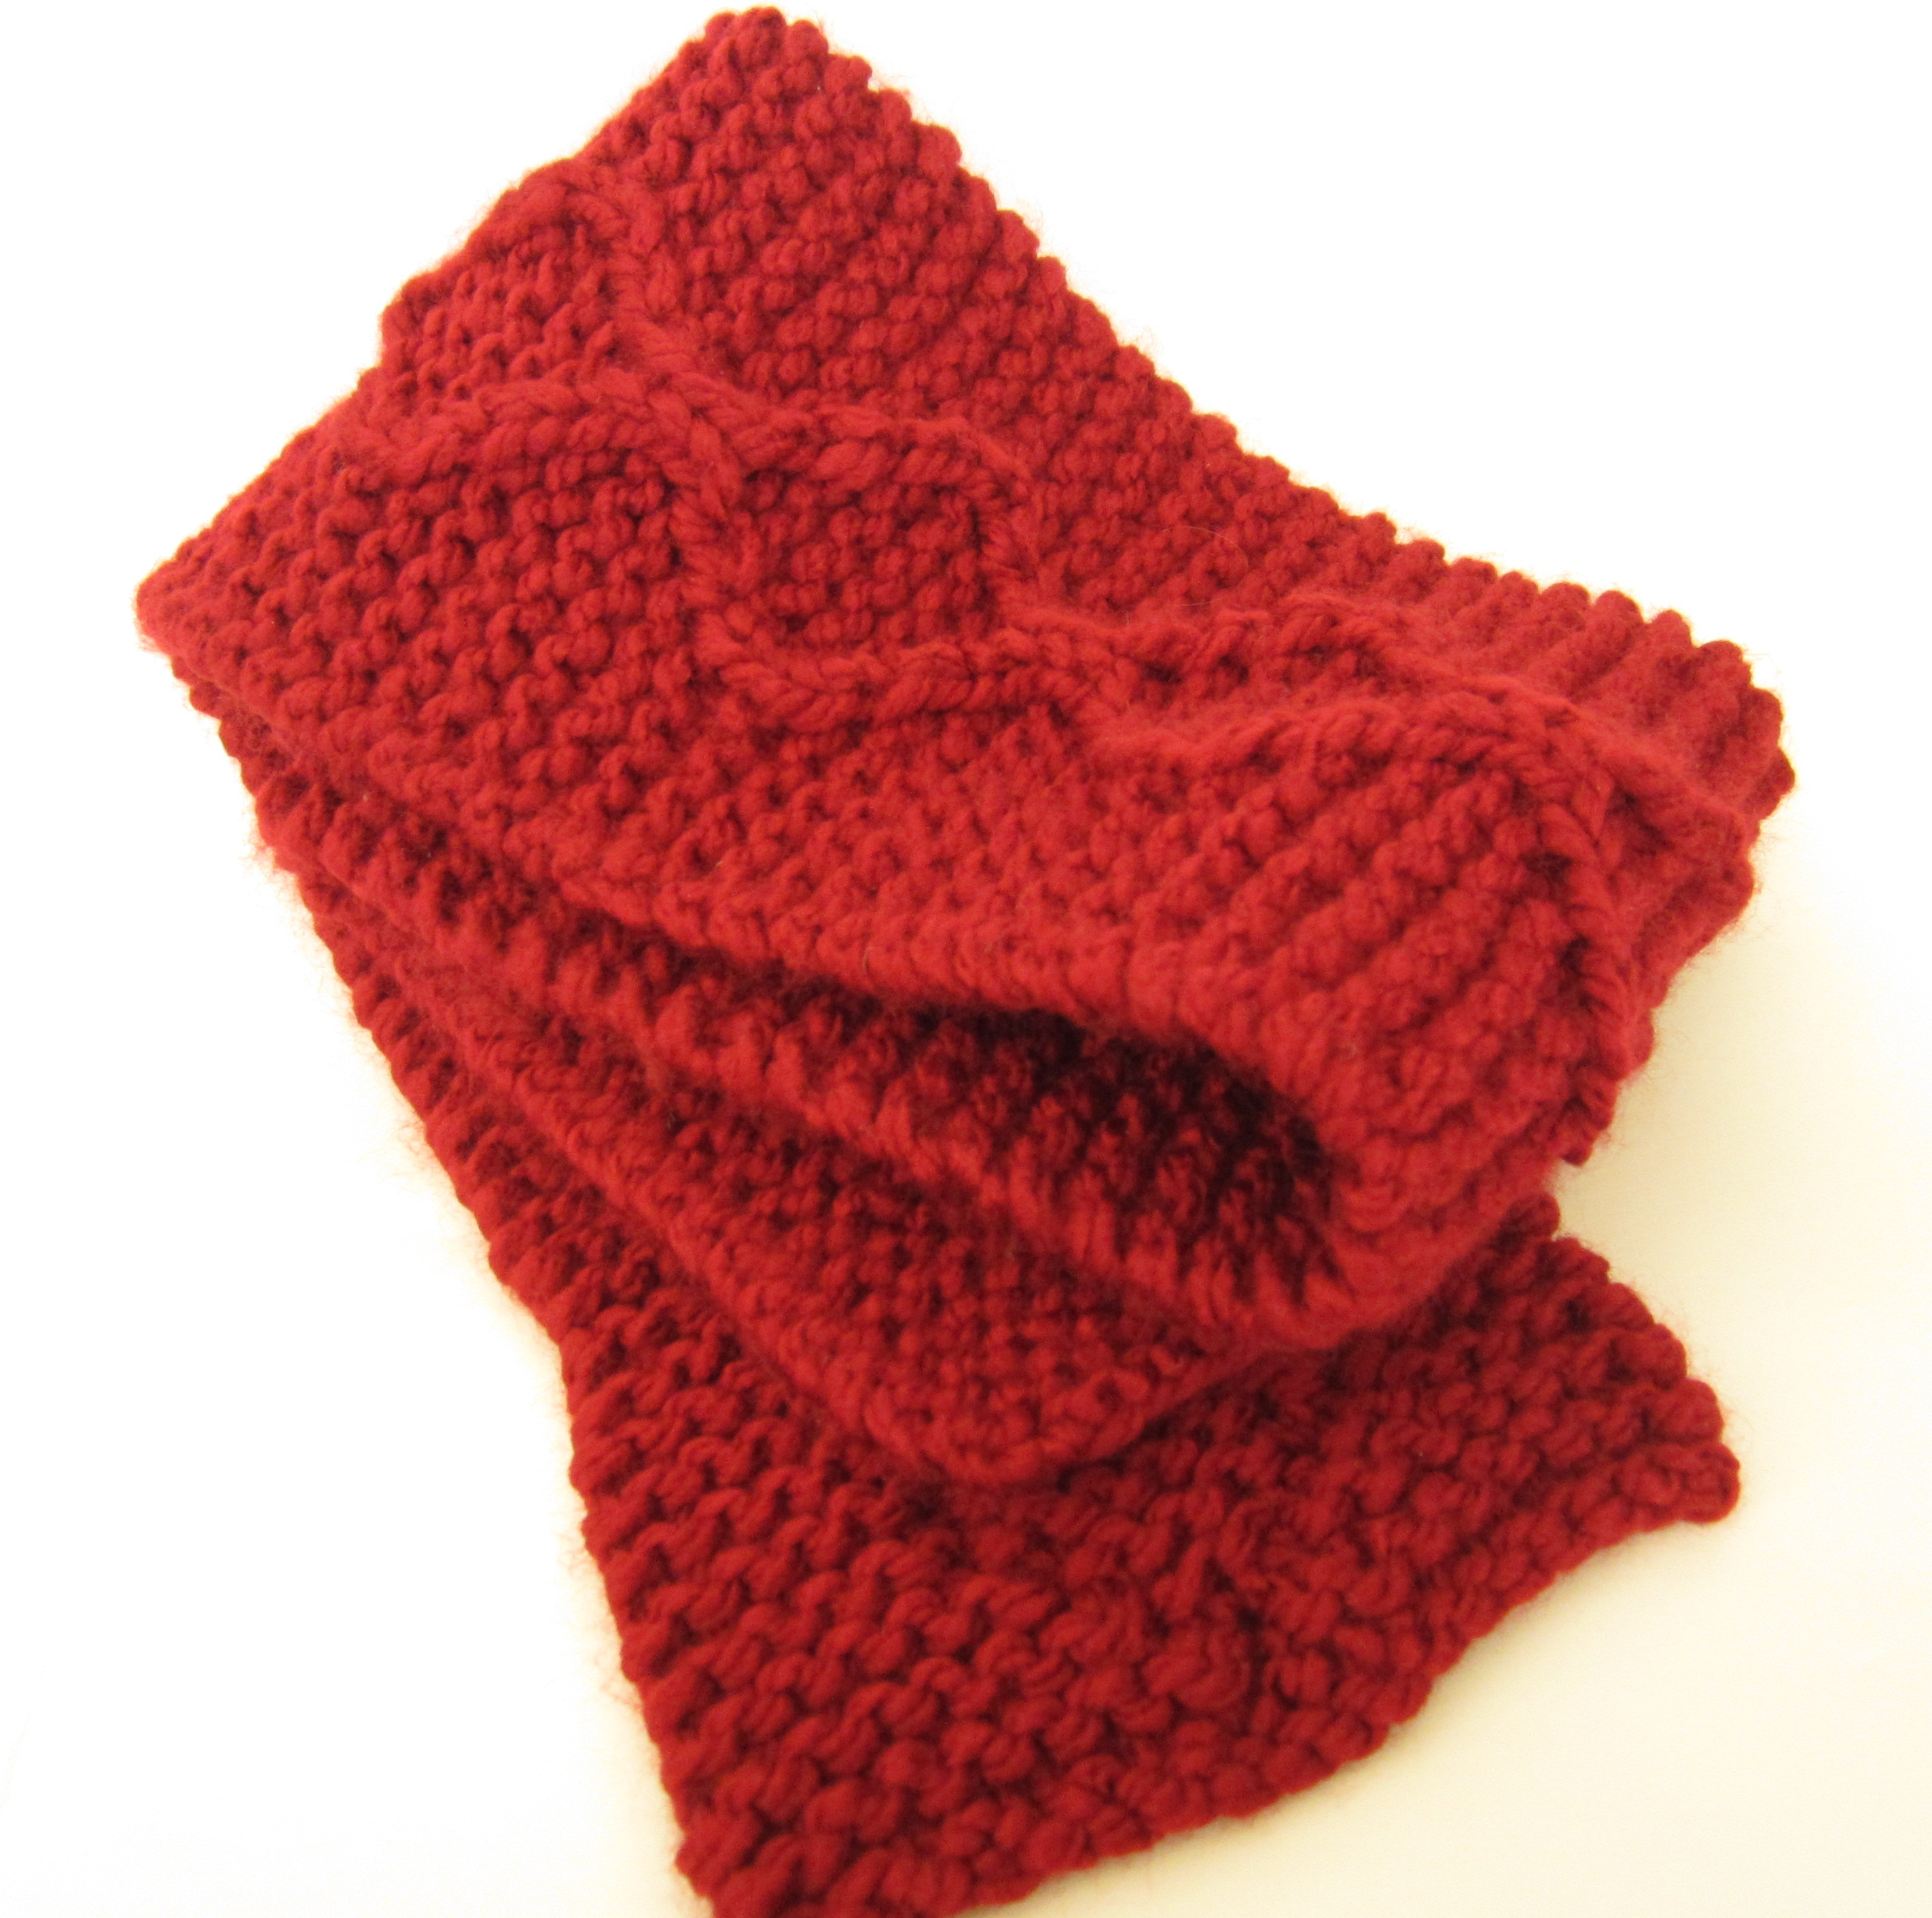 Knitting Patterns For Big Scarves : Quick Free Knitting Pattern   Chunky Cable Scarf